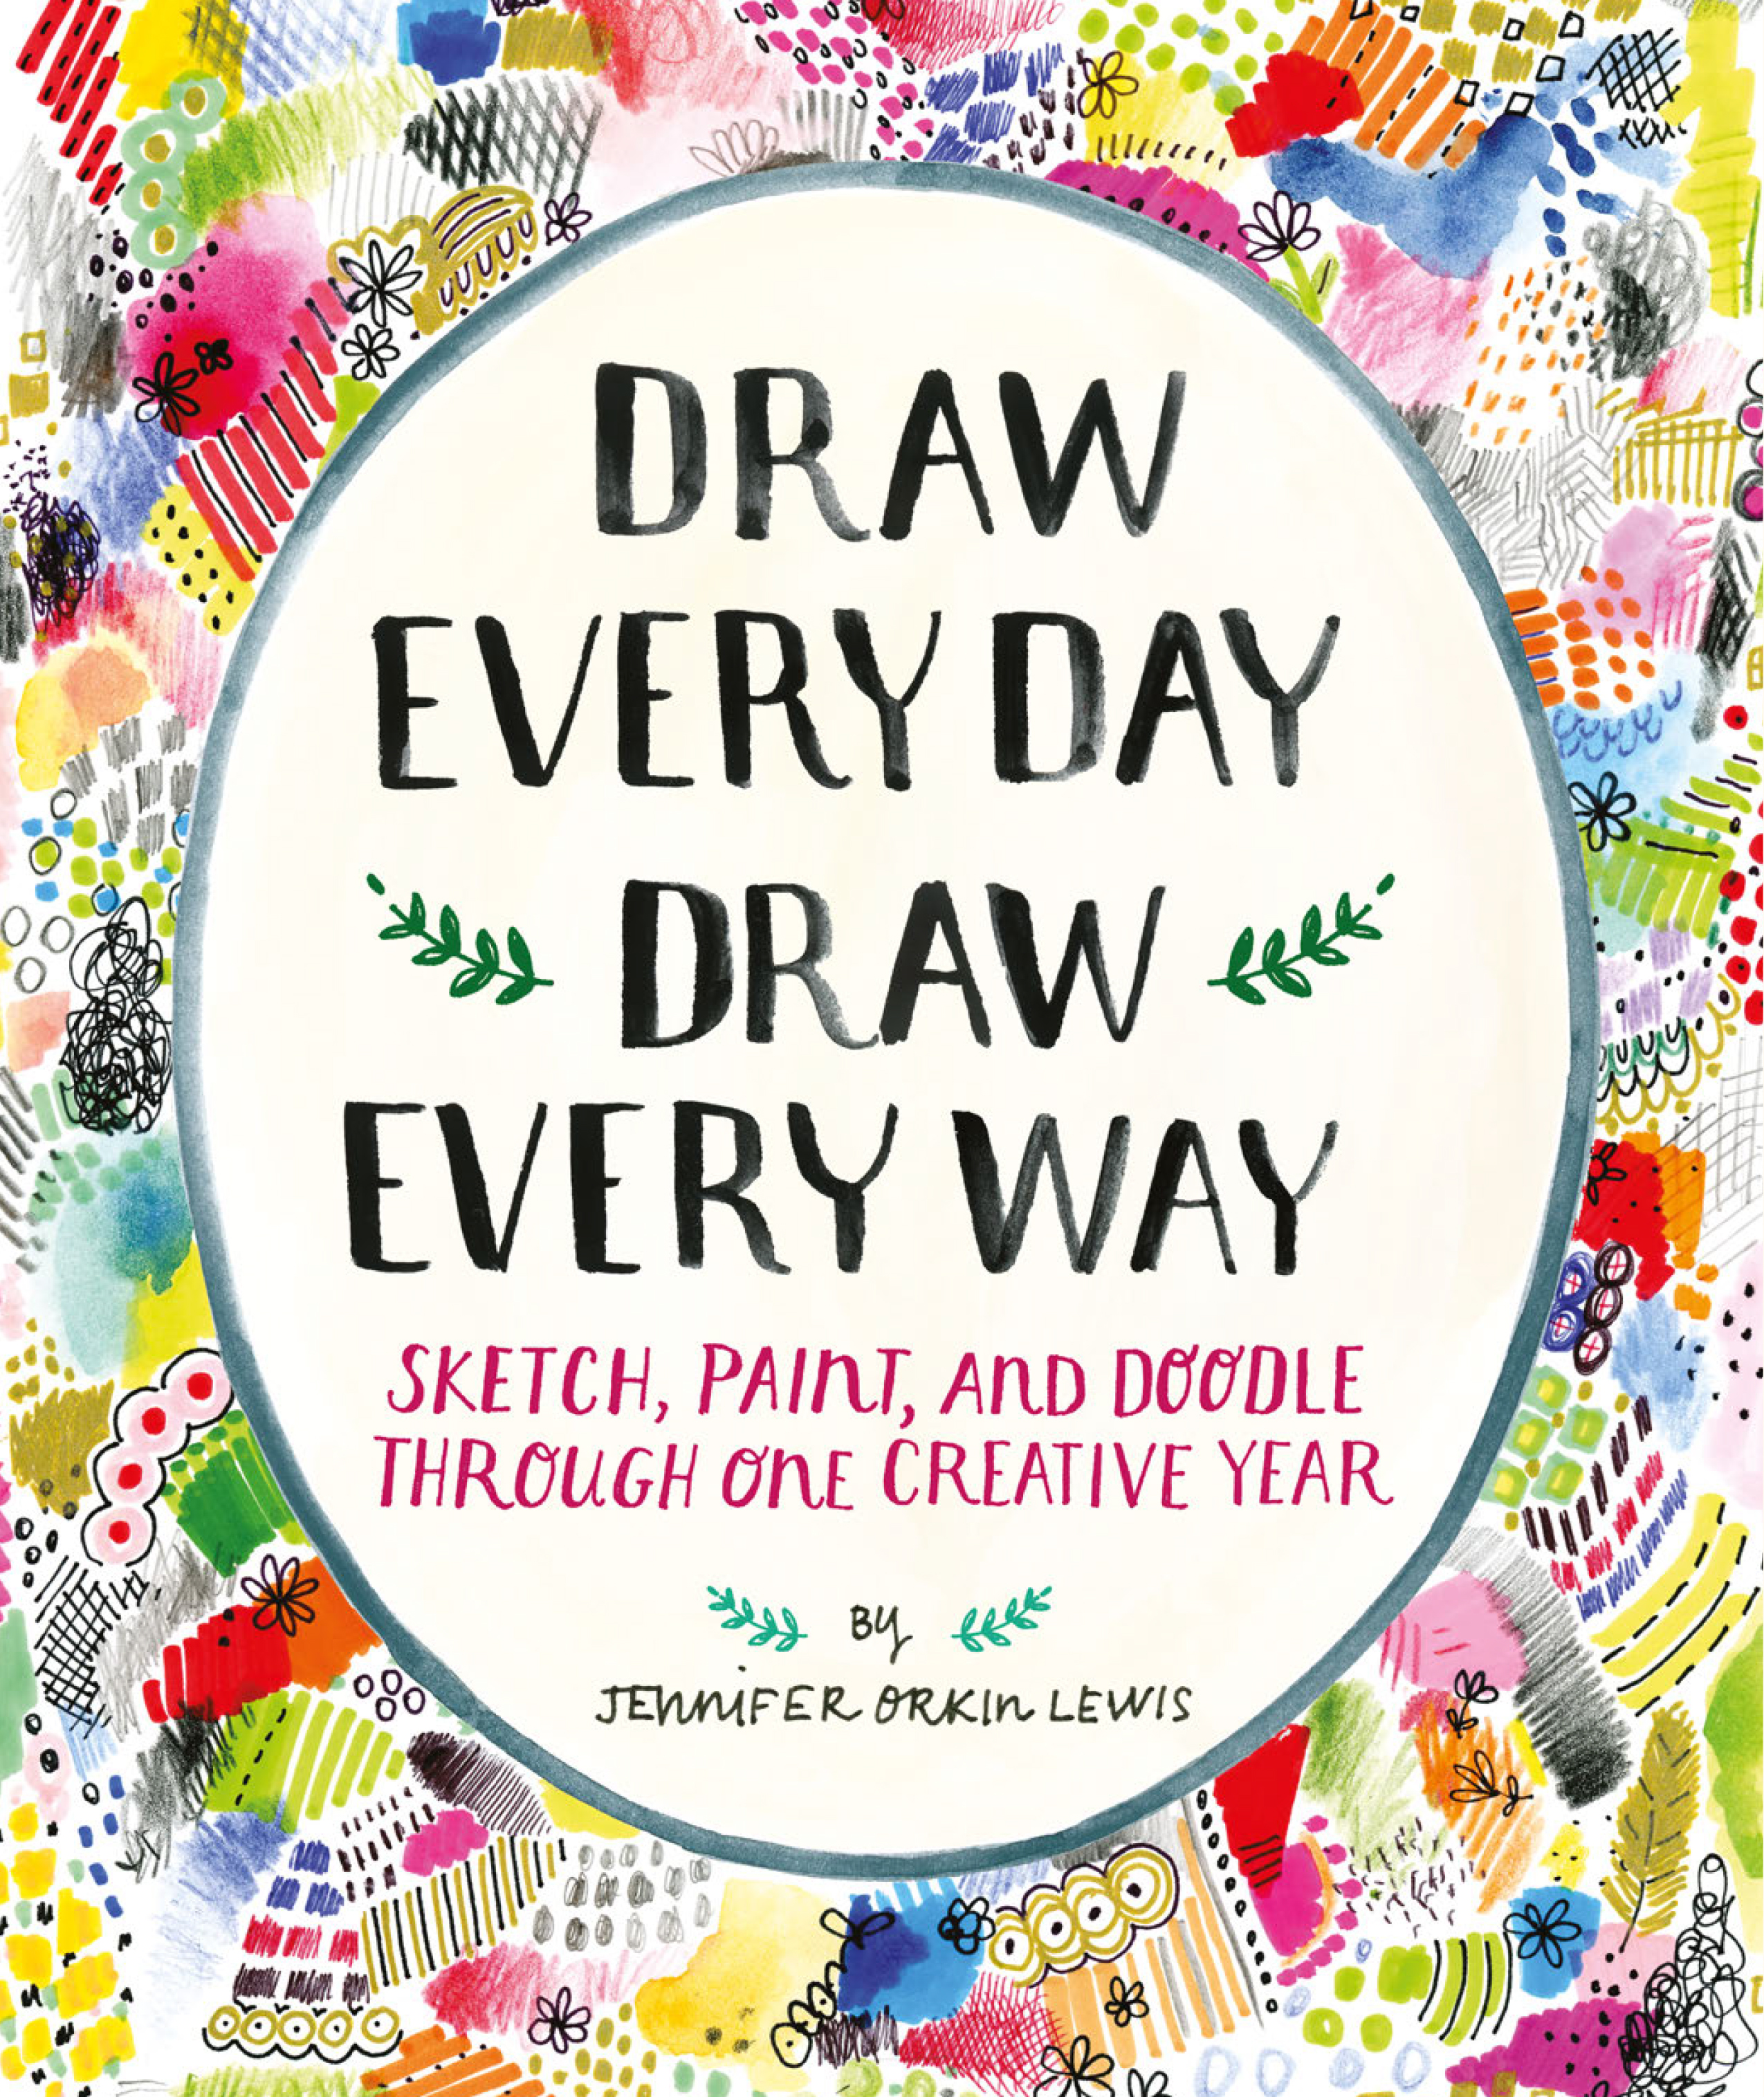 Book Launch: Draw Every Day Draw Every Way by Jennifer Orkin Lewis